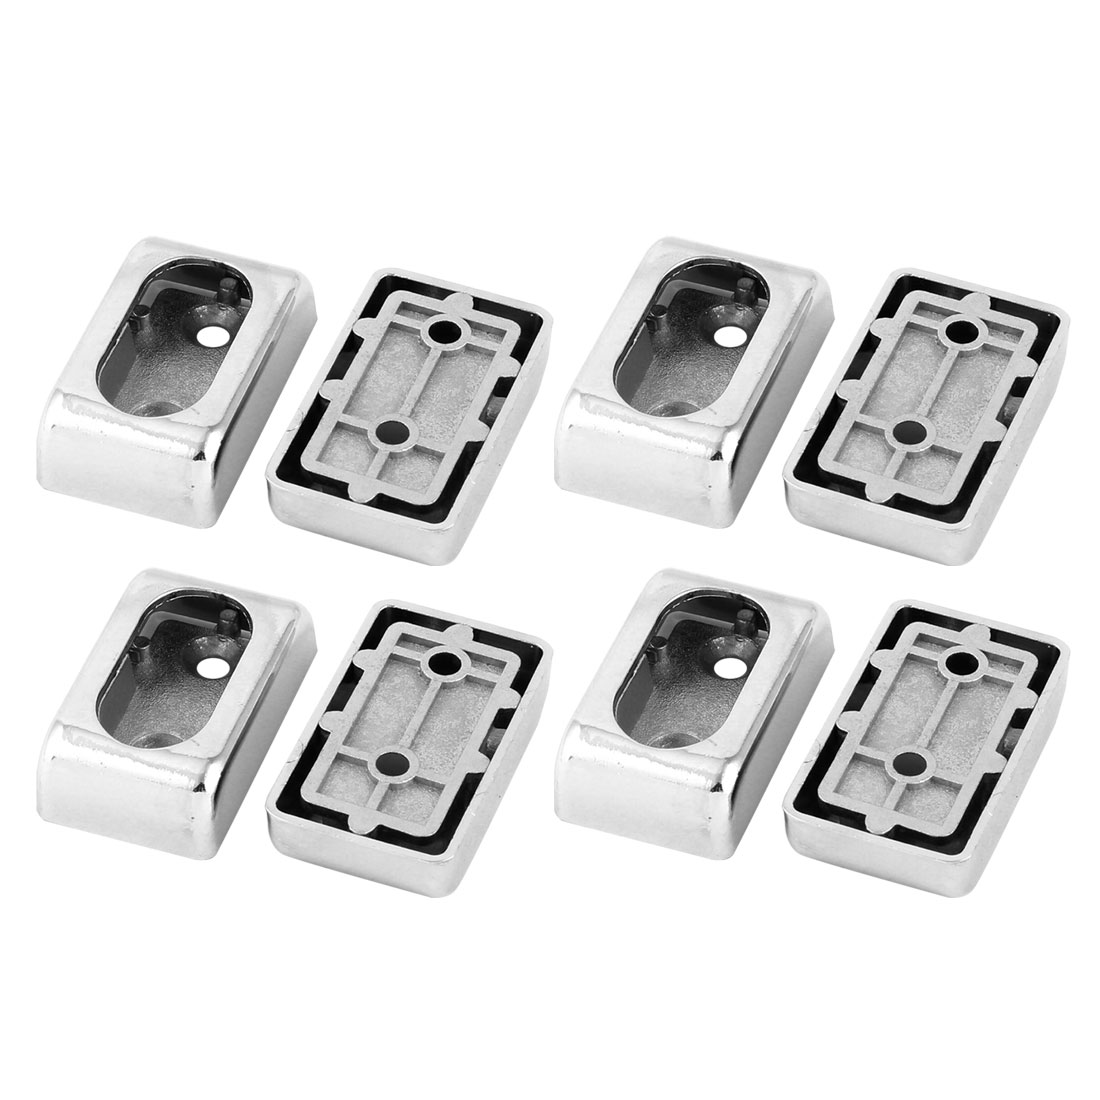 Home Metal Garment Clothes Closet Rod Holder End Support Pole Socket Flange Bracket 8pcs